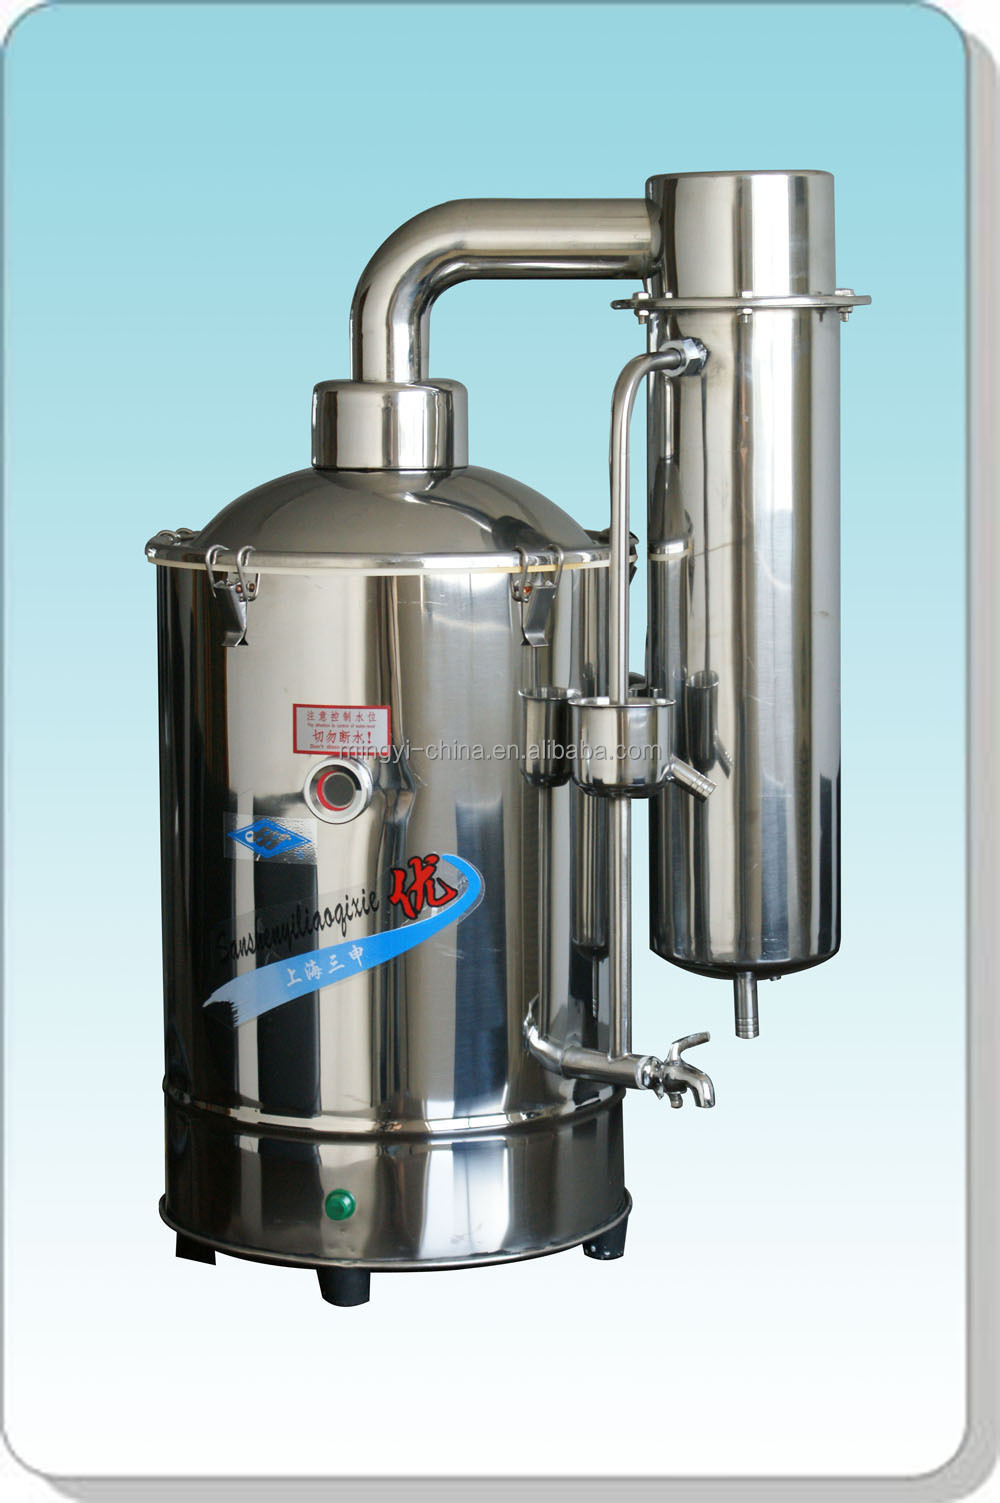 Professional Lab Water Distiller With Stainless Steel